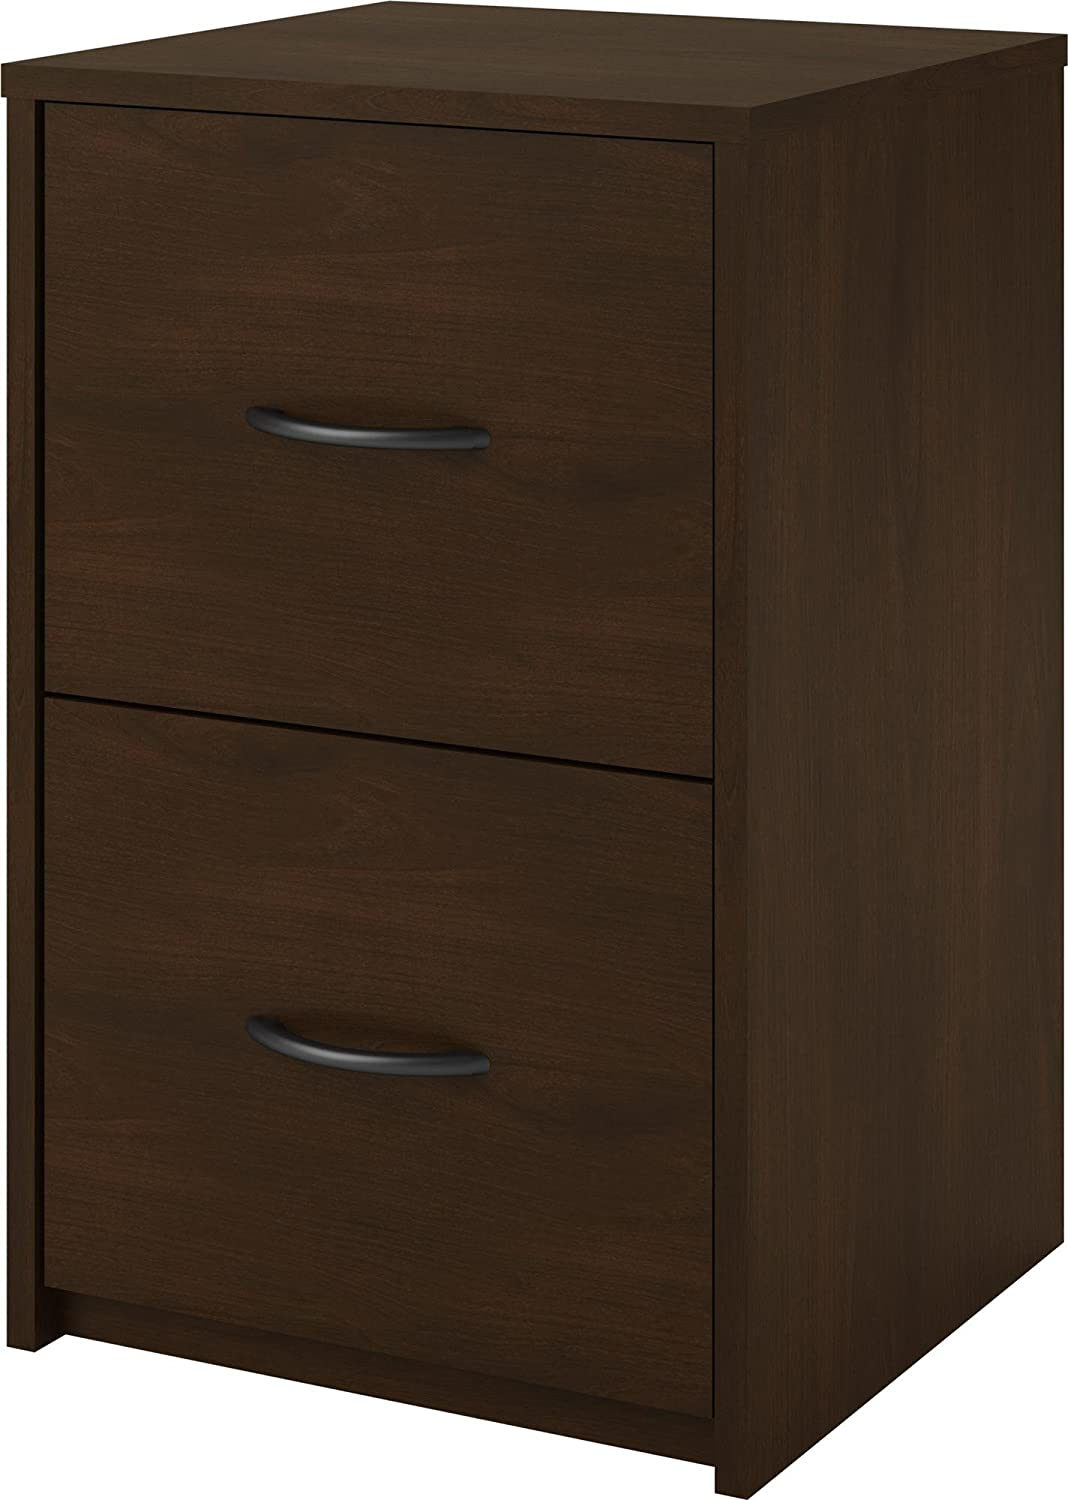 Ameriwood Home Core 2 Drawer File Cabinet, Bank Adler Dorel Home Furnishings 9524301PCOM